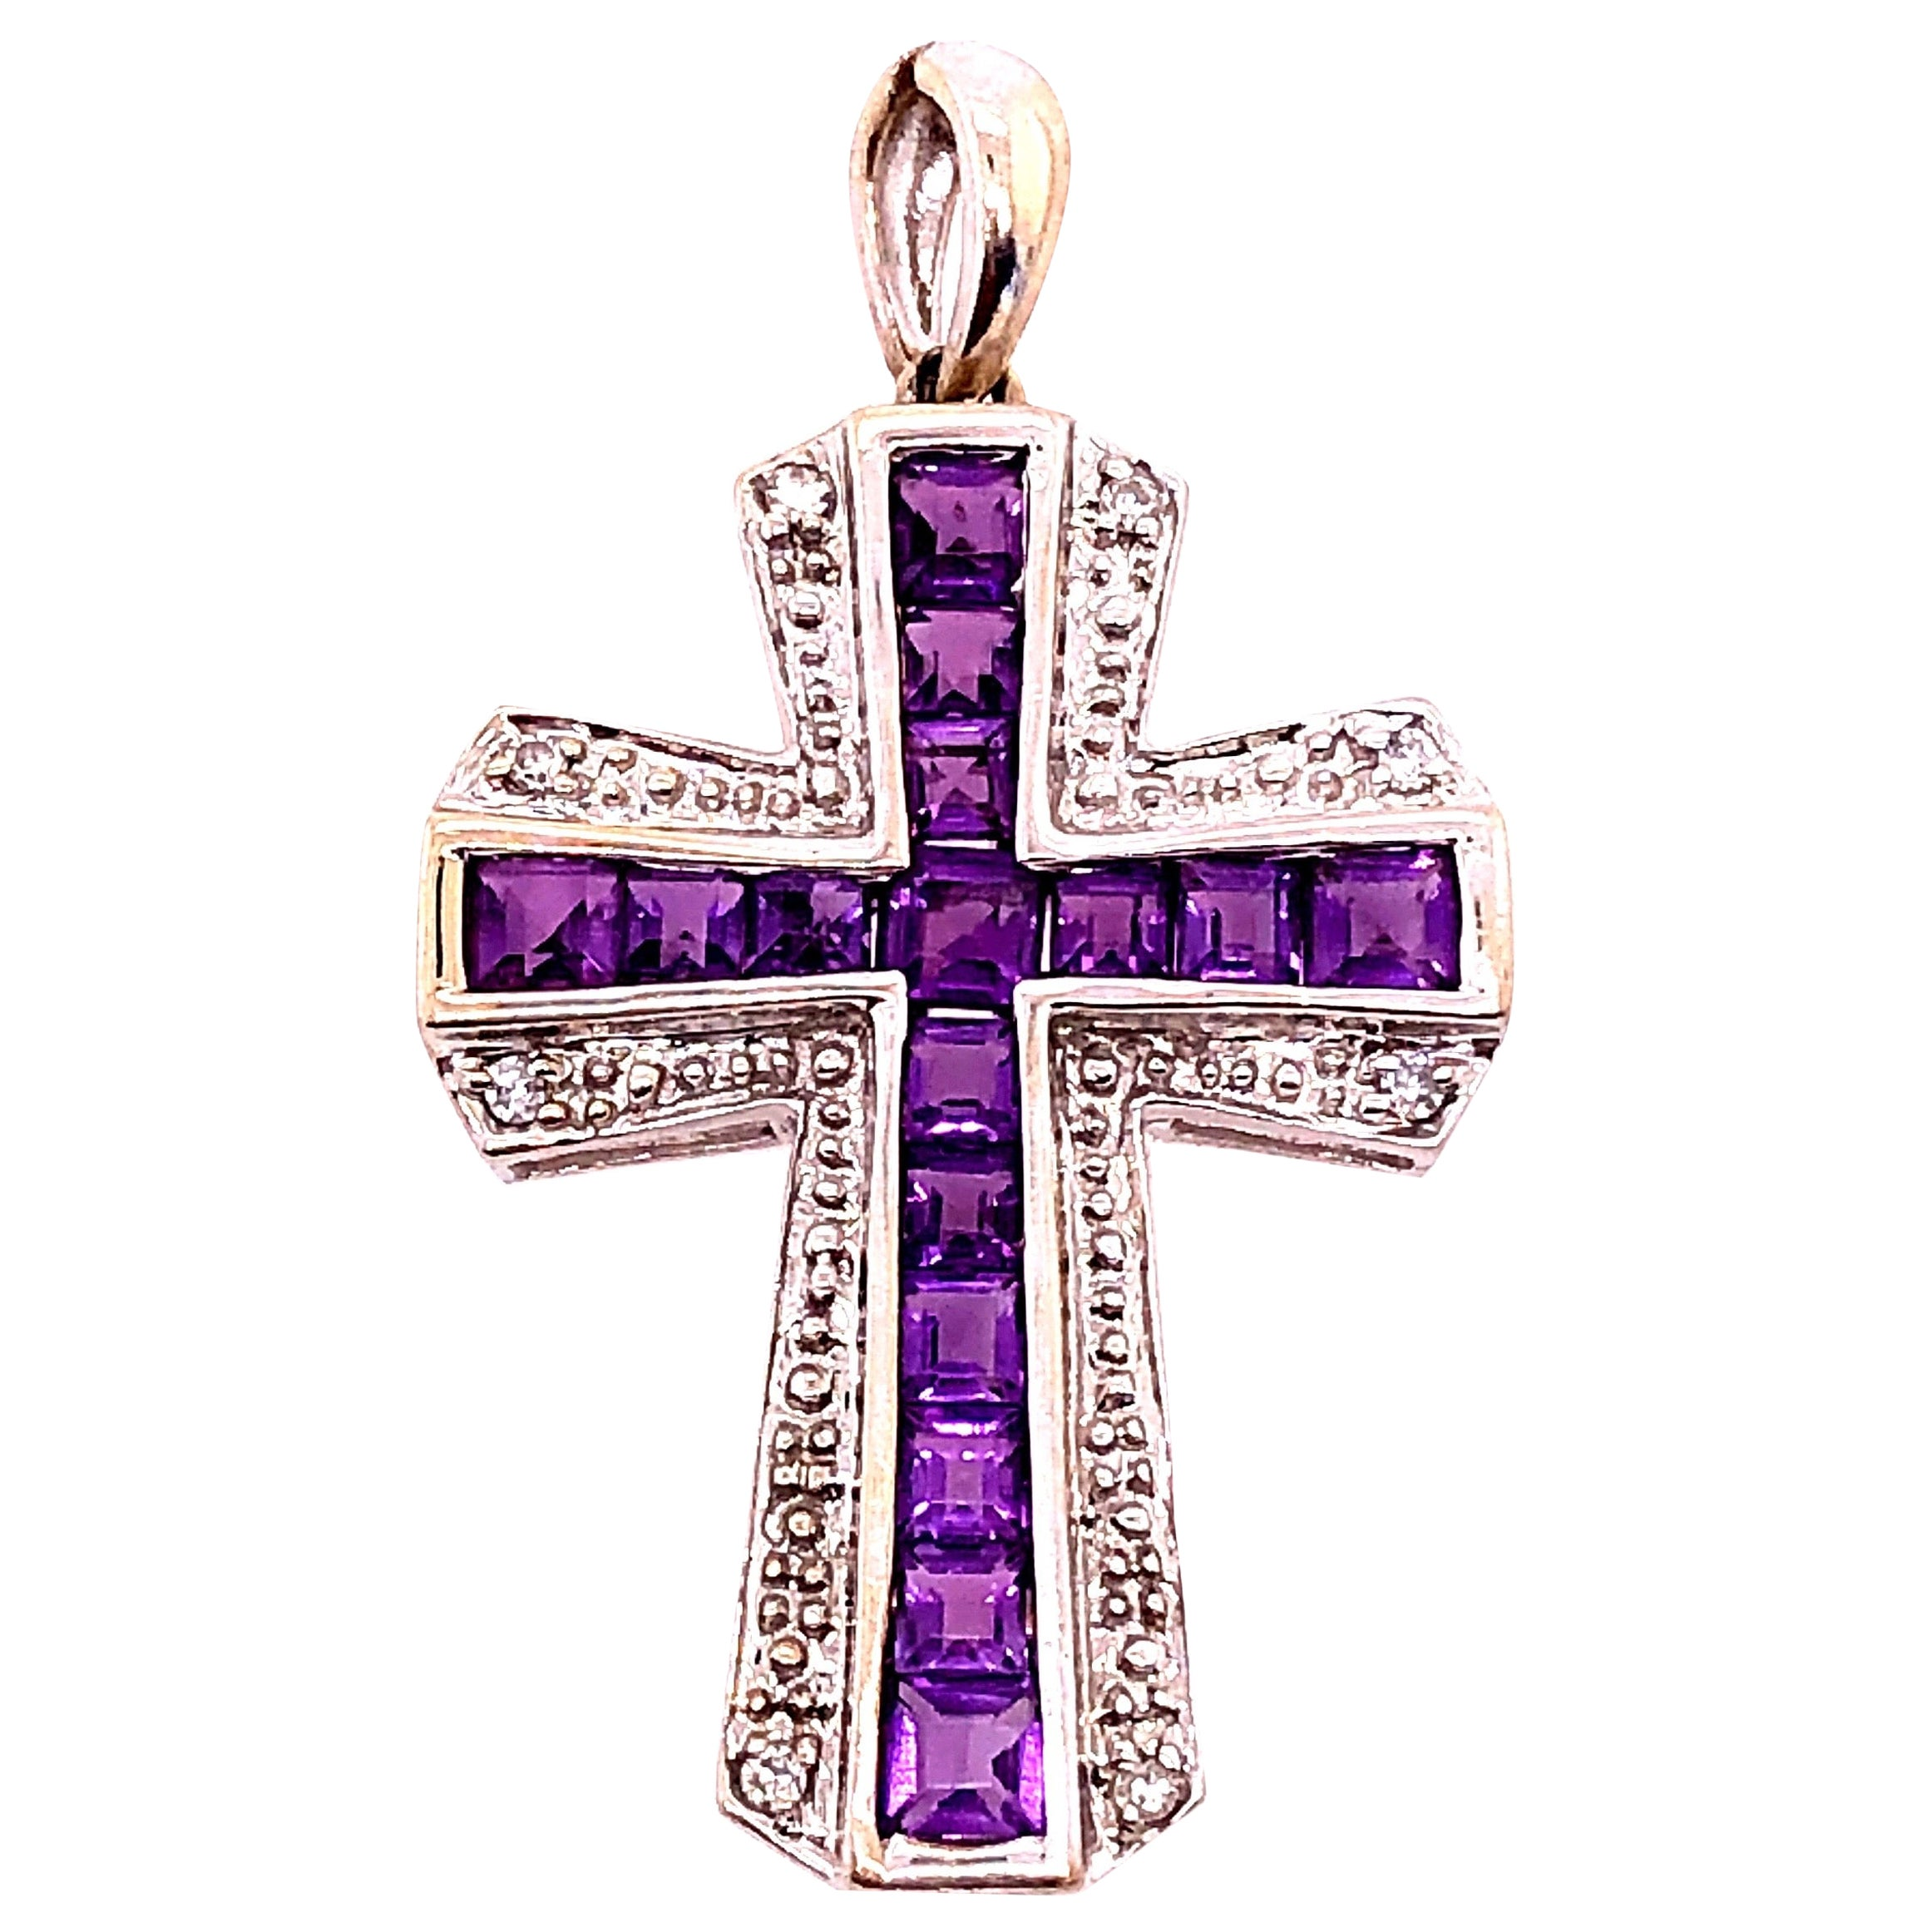 14 Karat Yellow and White Gold Charm Pendant with Diamond and Amethyst